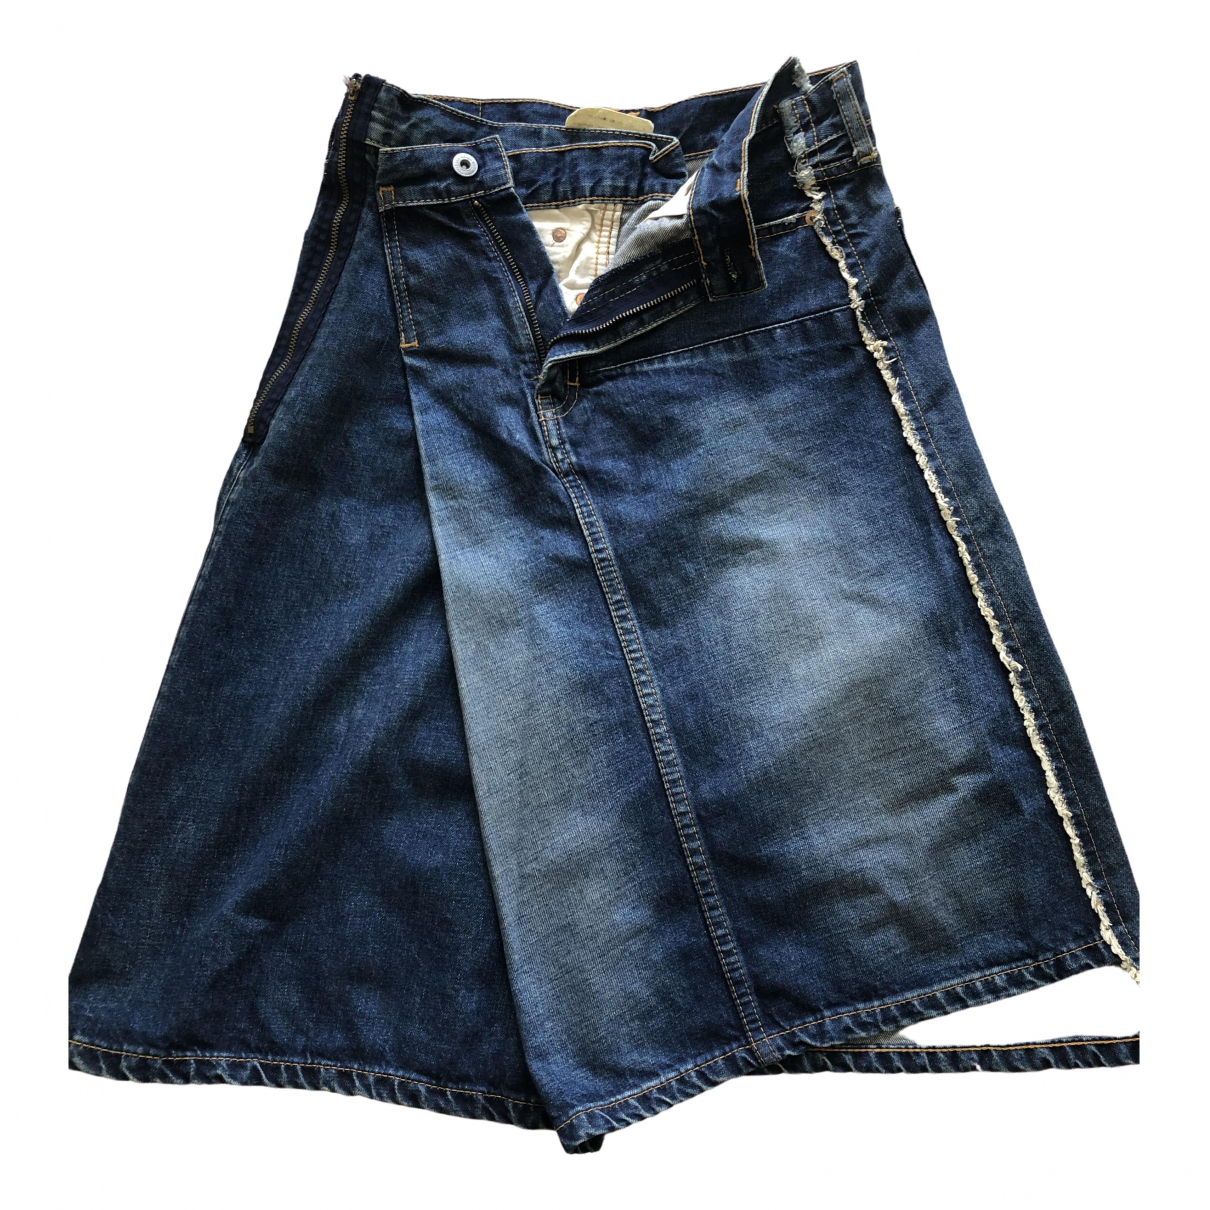 Junya Watanabe \N Blue Denim - Jeans skirt for Women M International